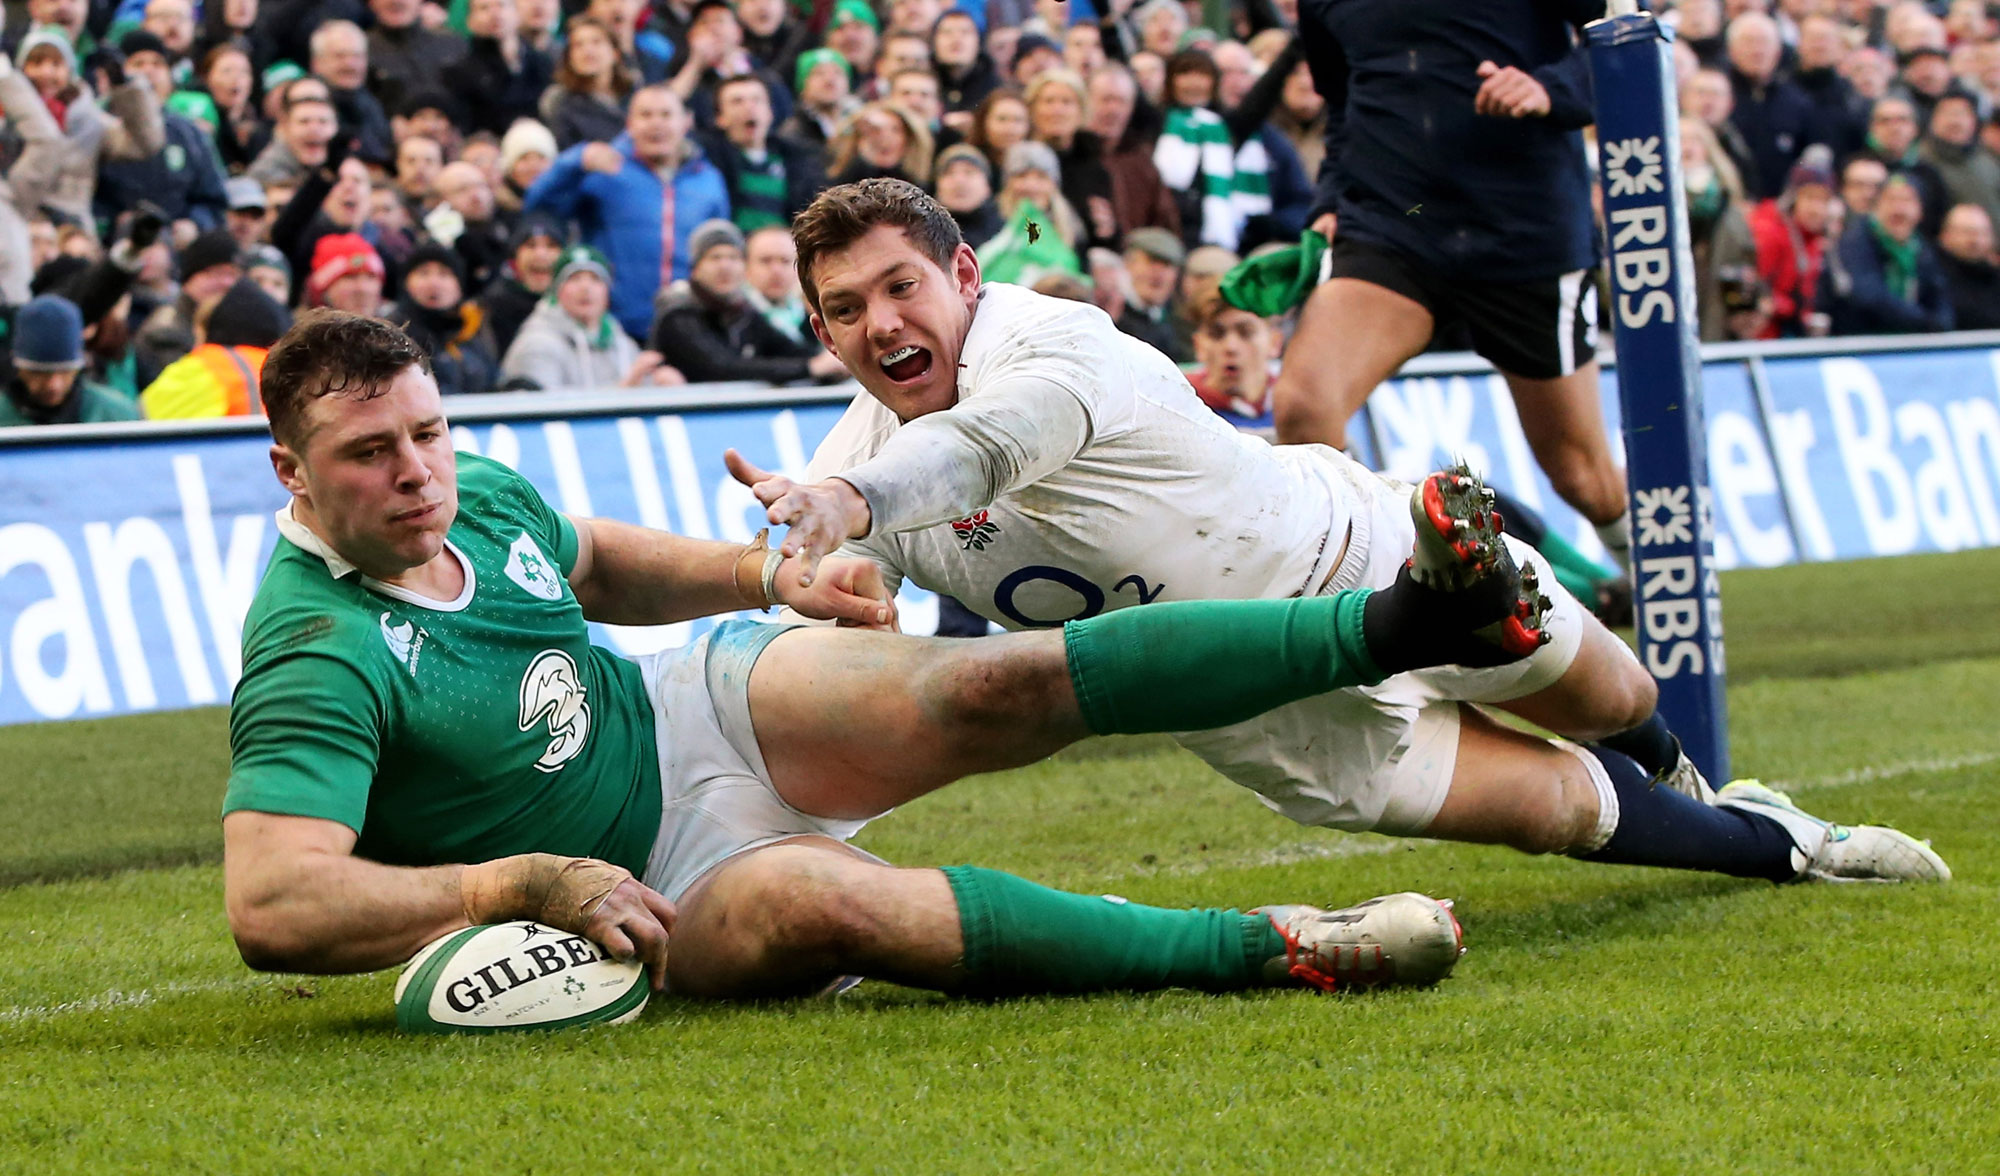 Aerial battle: Ireland's Robbie Henshaw scored the decisive try to beat England in 2015.